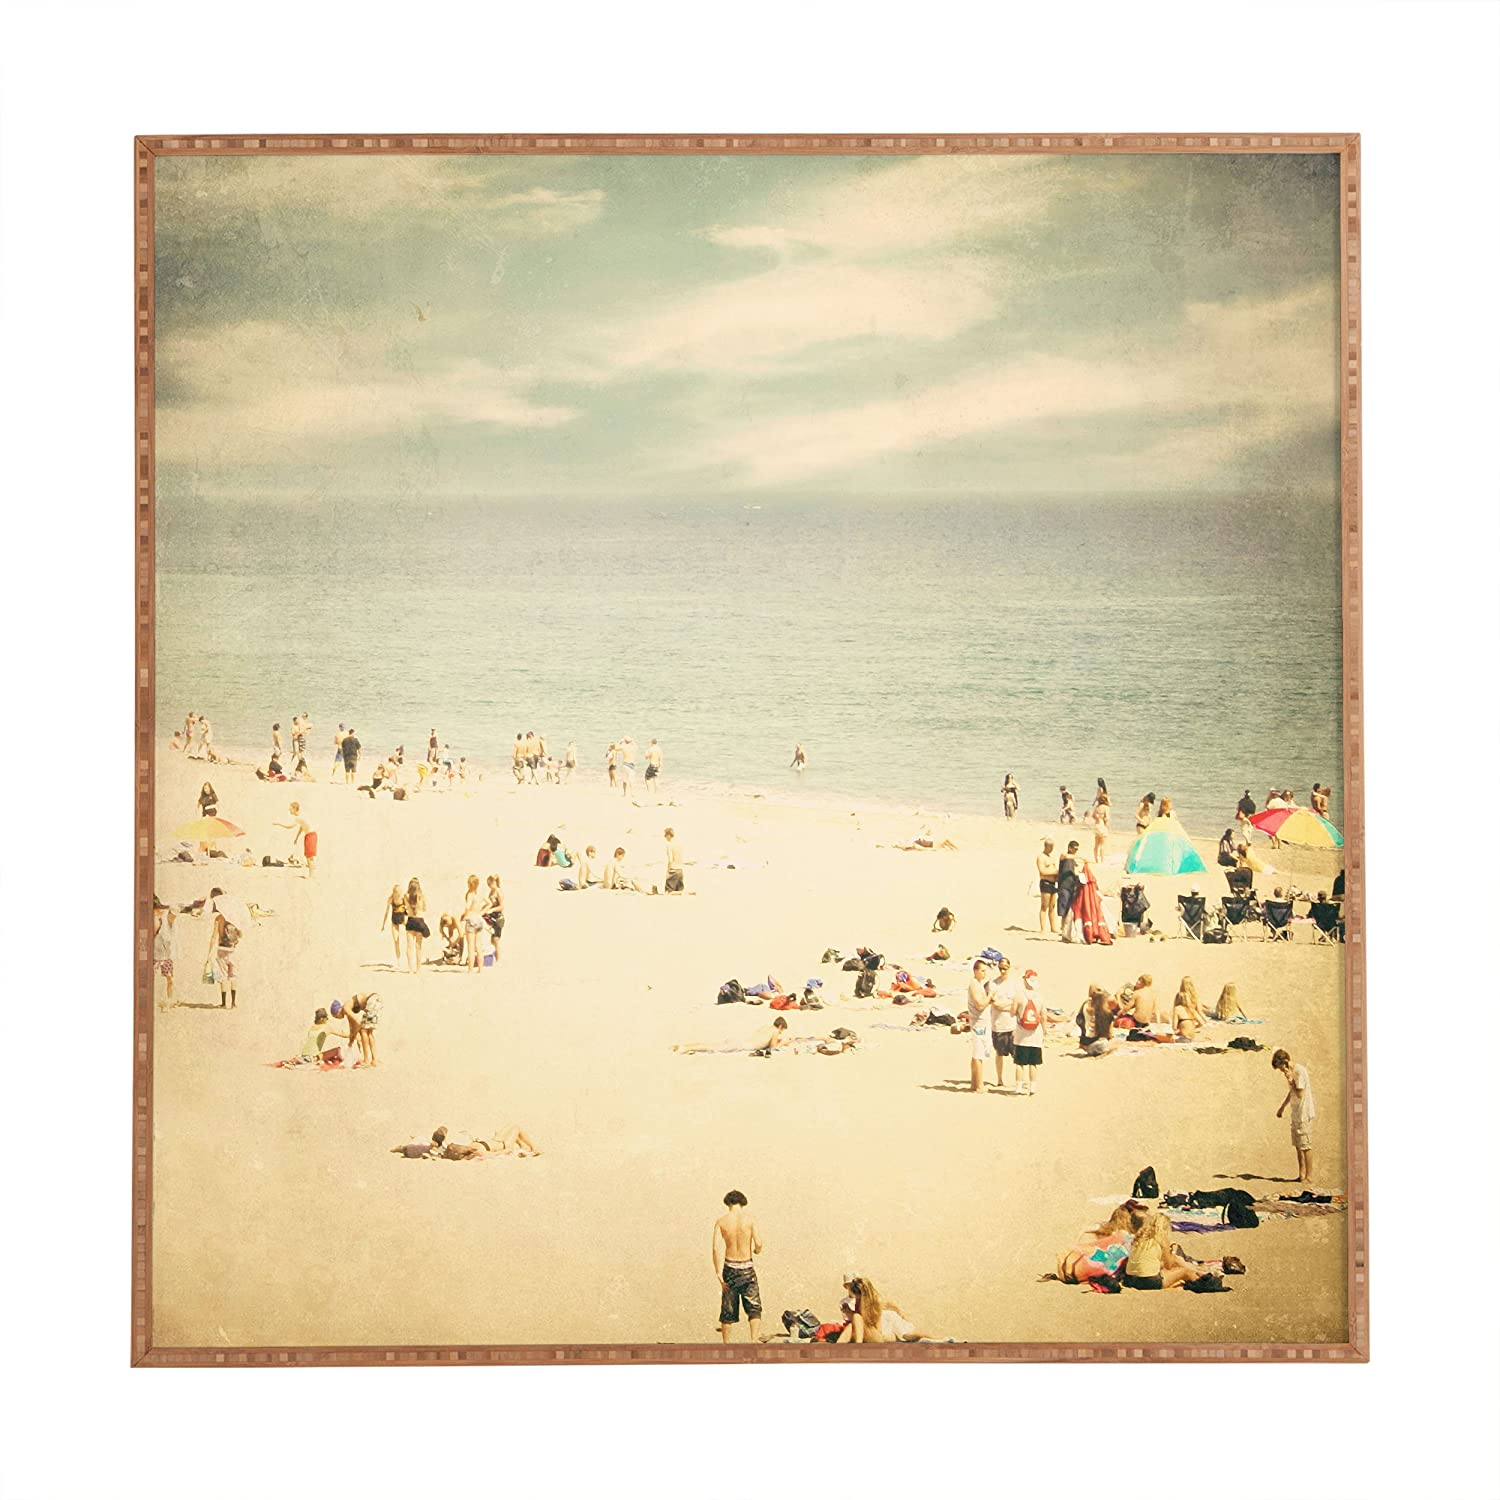 Amazon.com: Deny Designs Shannon Clark Vintage Beach Framed Wall Art, 20 x  20: Posters & Prints